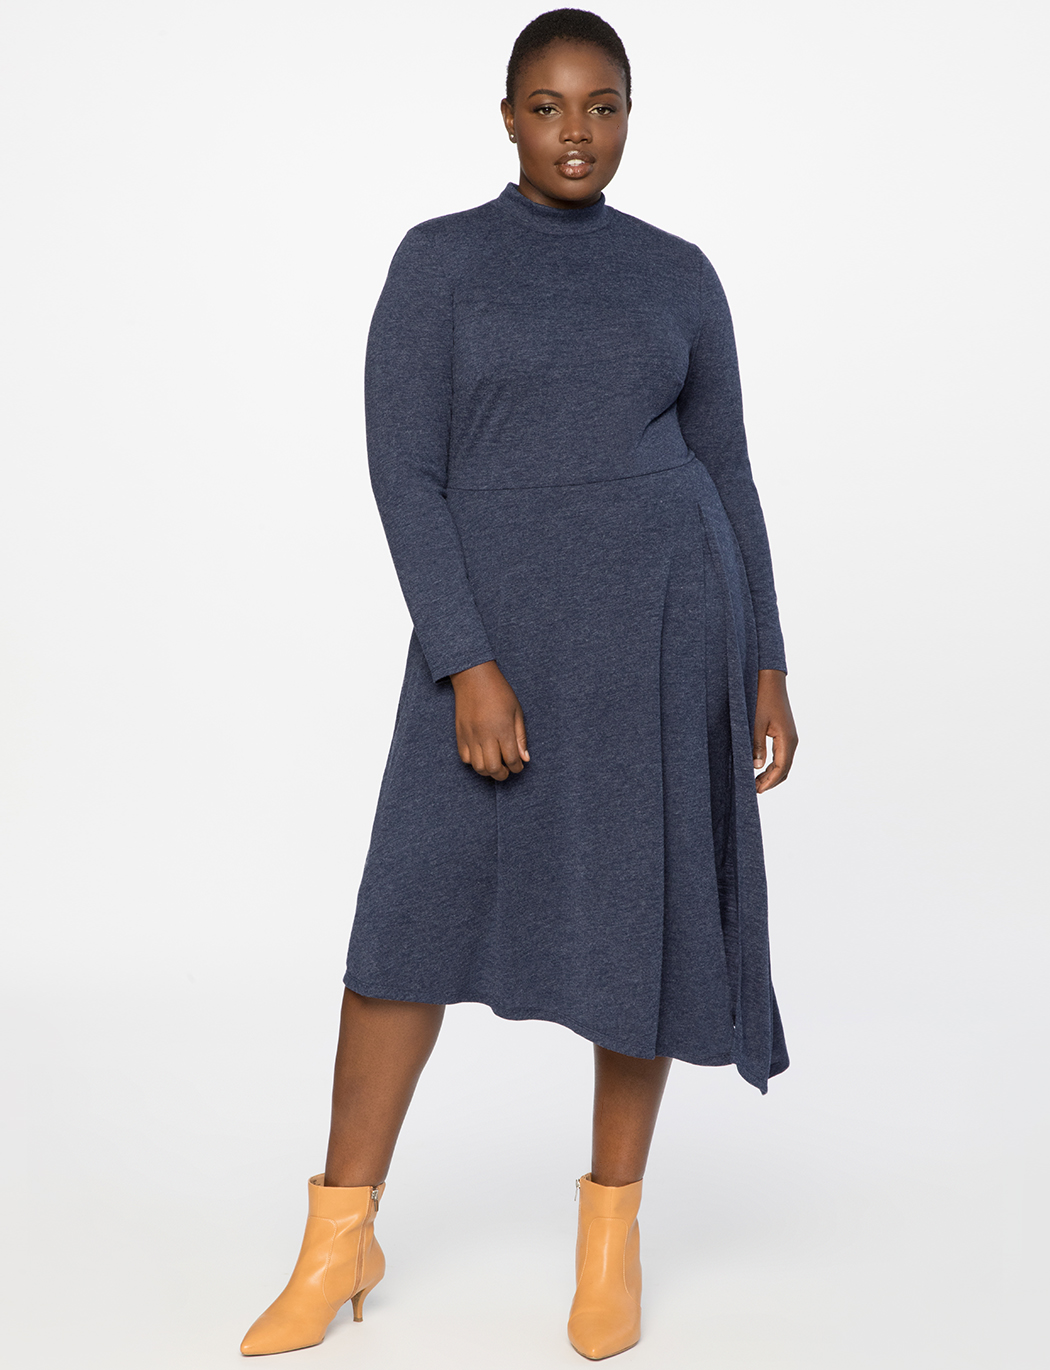 Asymmetrical Turtleneck Dress with Slit 13